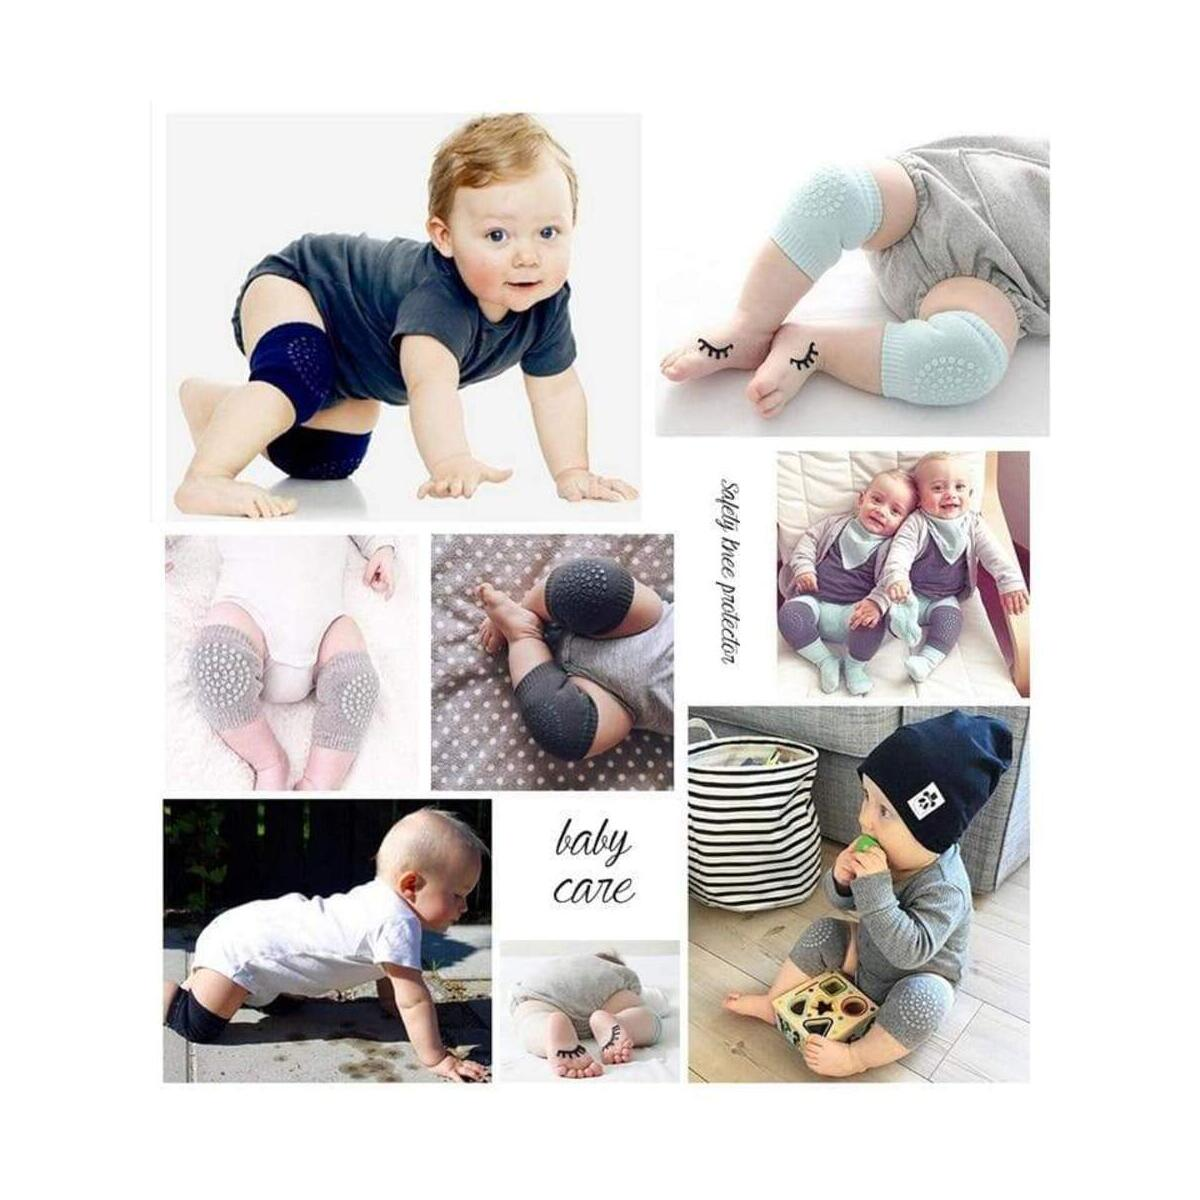 Baby Crawling Support Adjustable Breathable Mesh Safety Anti-Slip Knee Pads Protector Guard